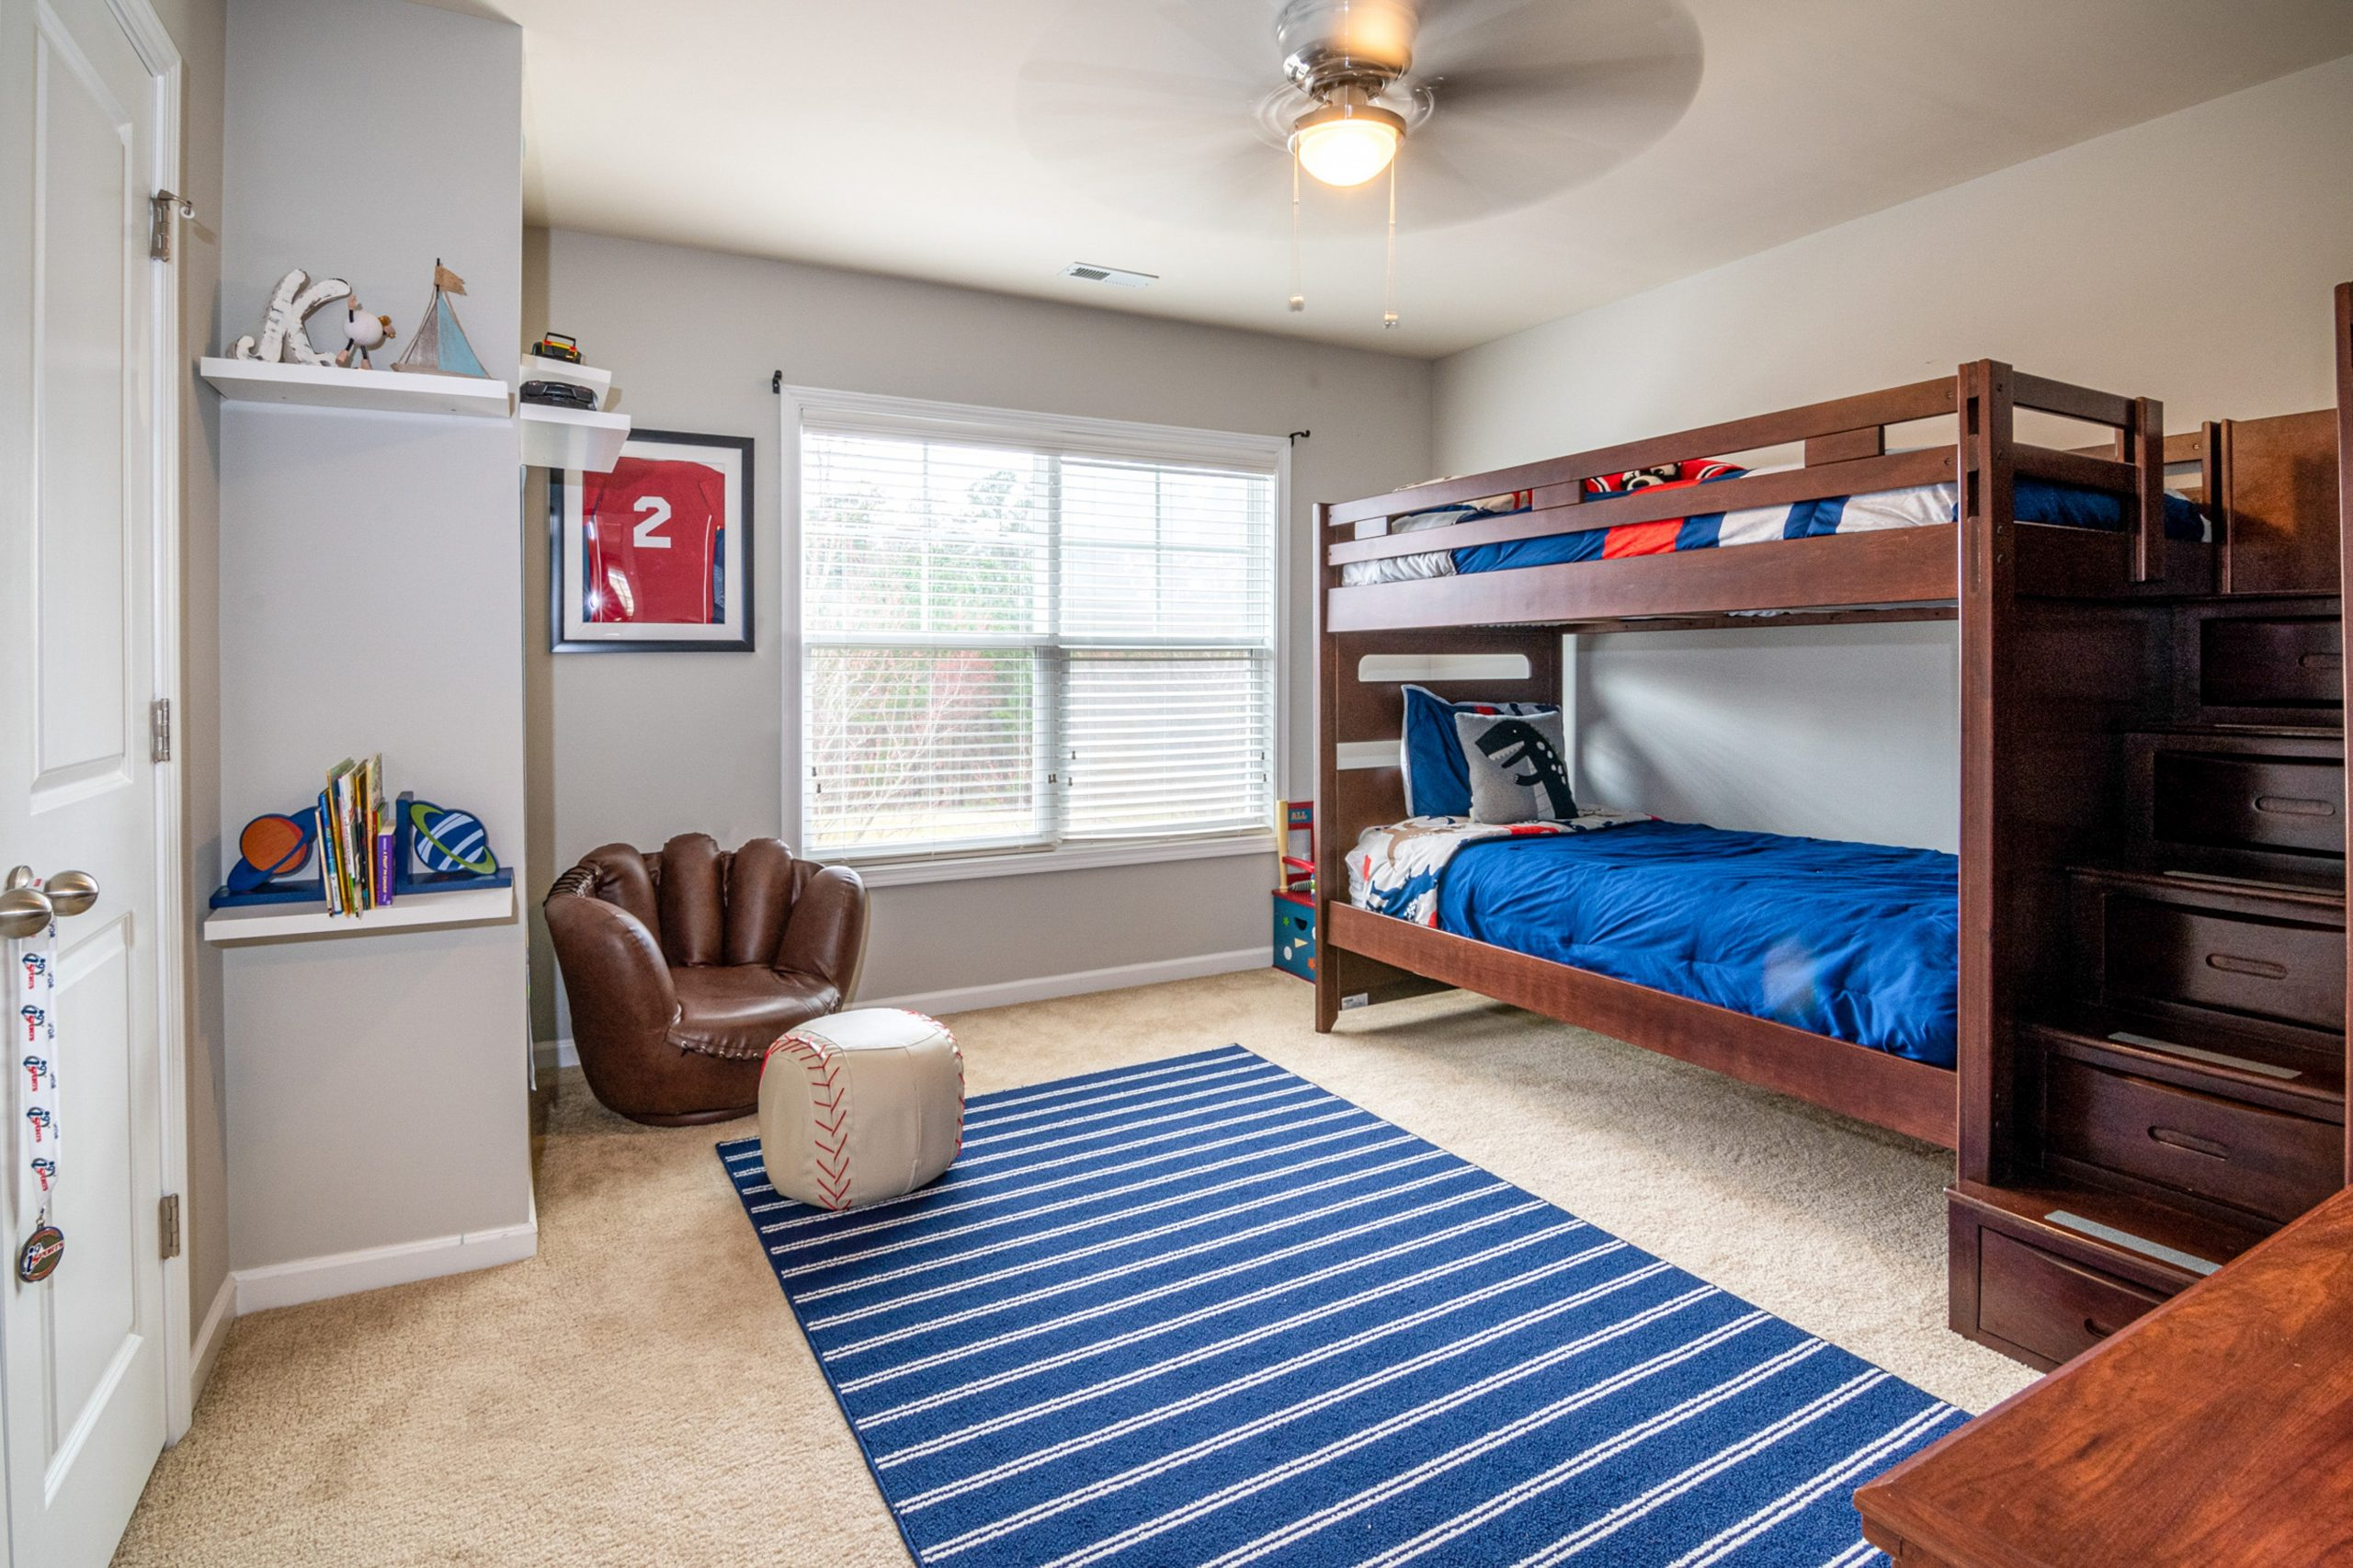 Picture of: Coolest Bedroom Decor Ideas With Bunk Beds Sippy Cup Mom